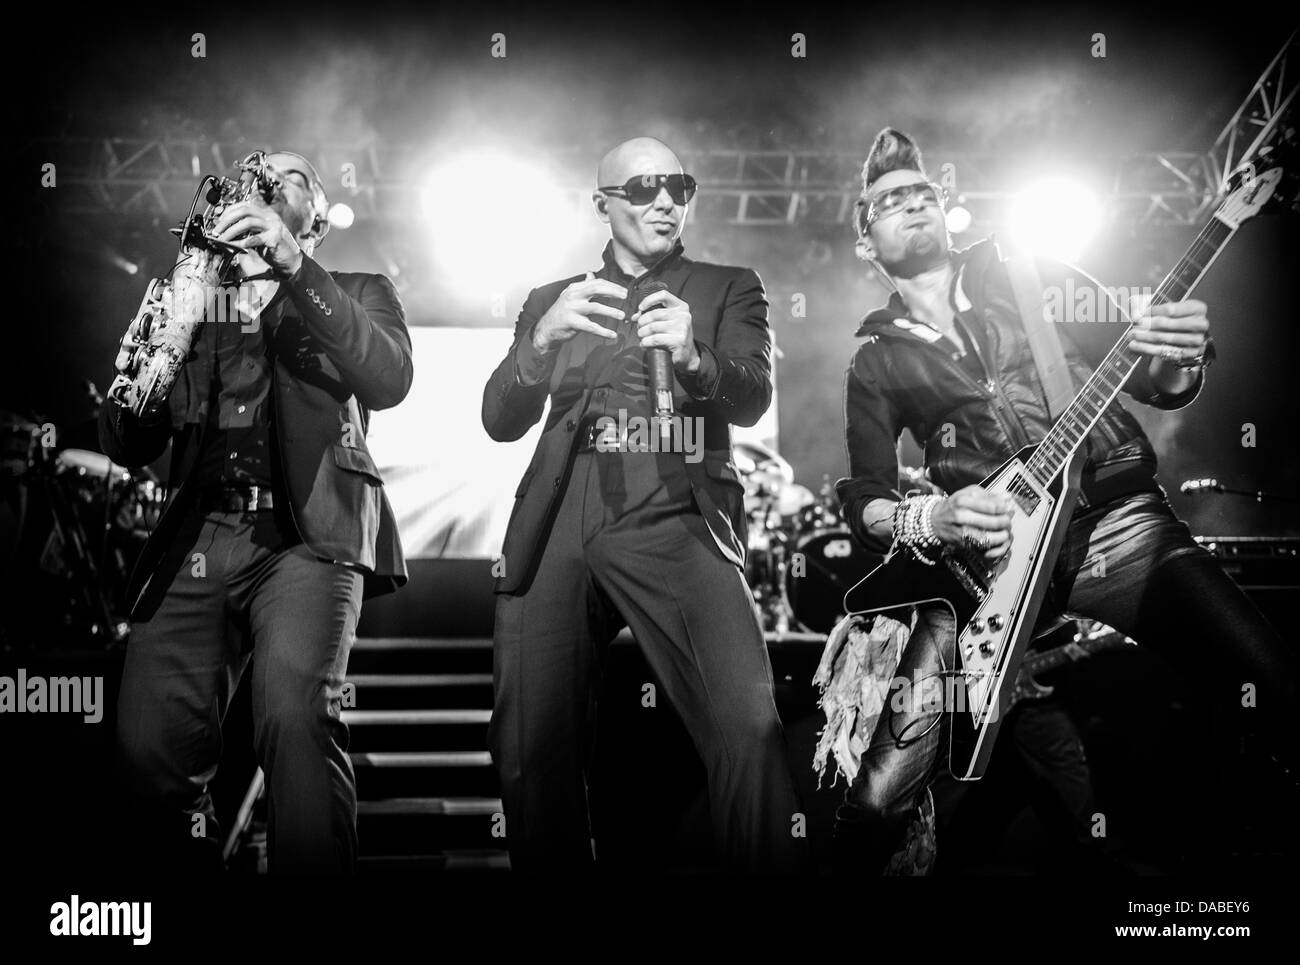 Pitbull performs live - Stock Image